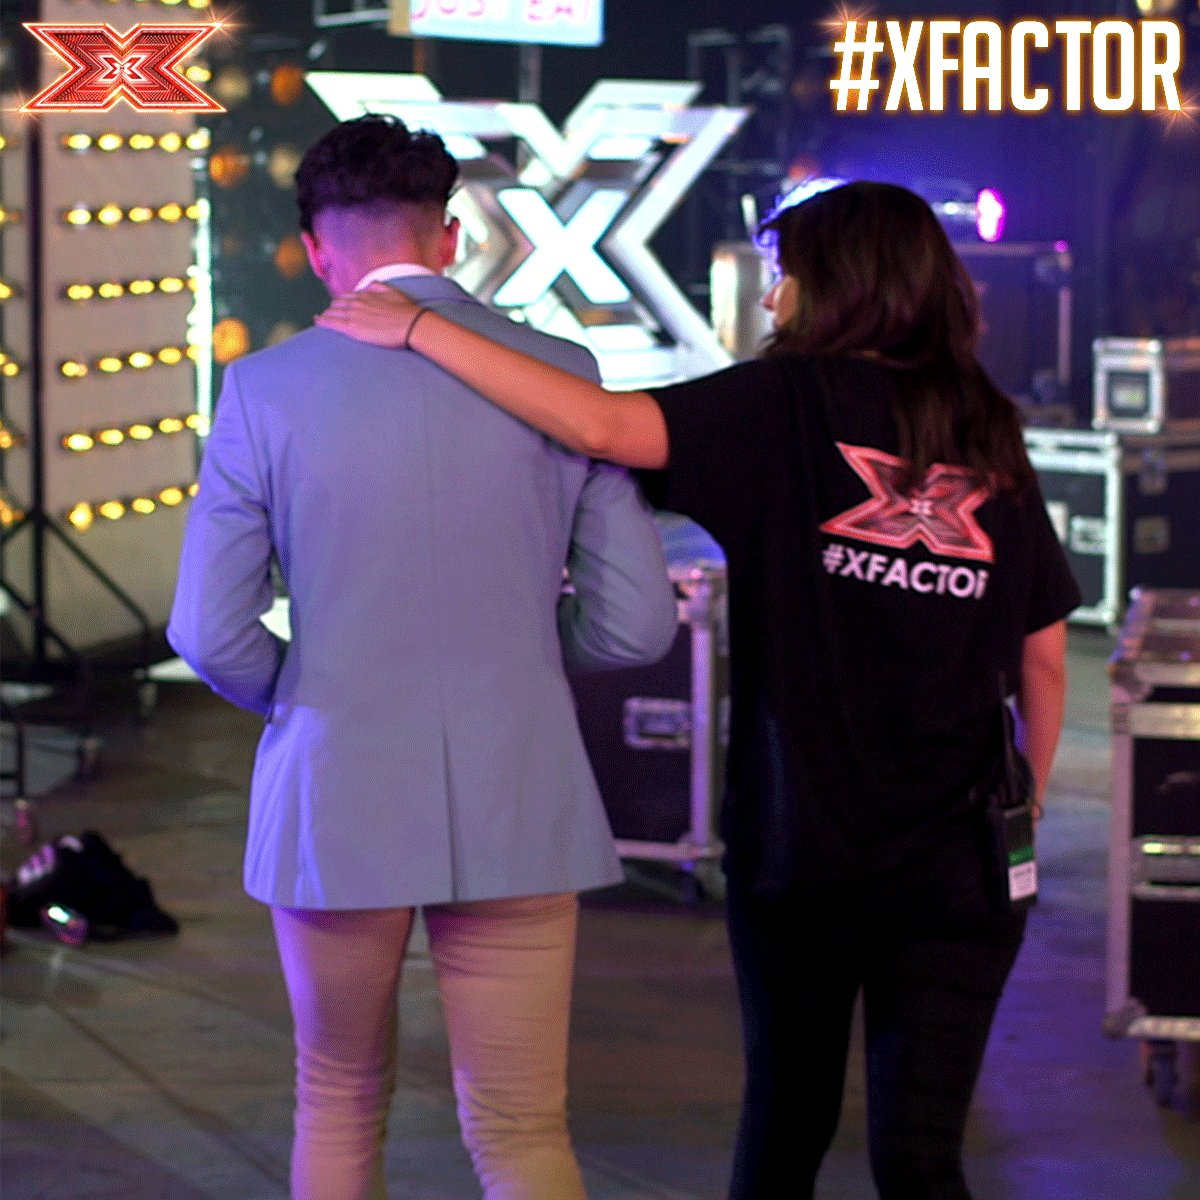 Oh man... Looks like it's the end of the road for @russell20111 😢😢😢 #SixChairChallenge #XFactor https://t.co/8XBSe9mOFC